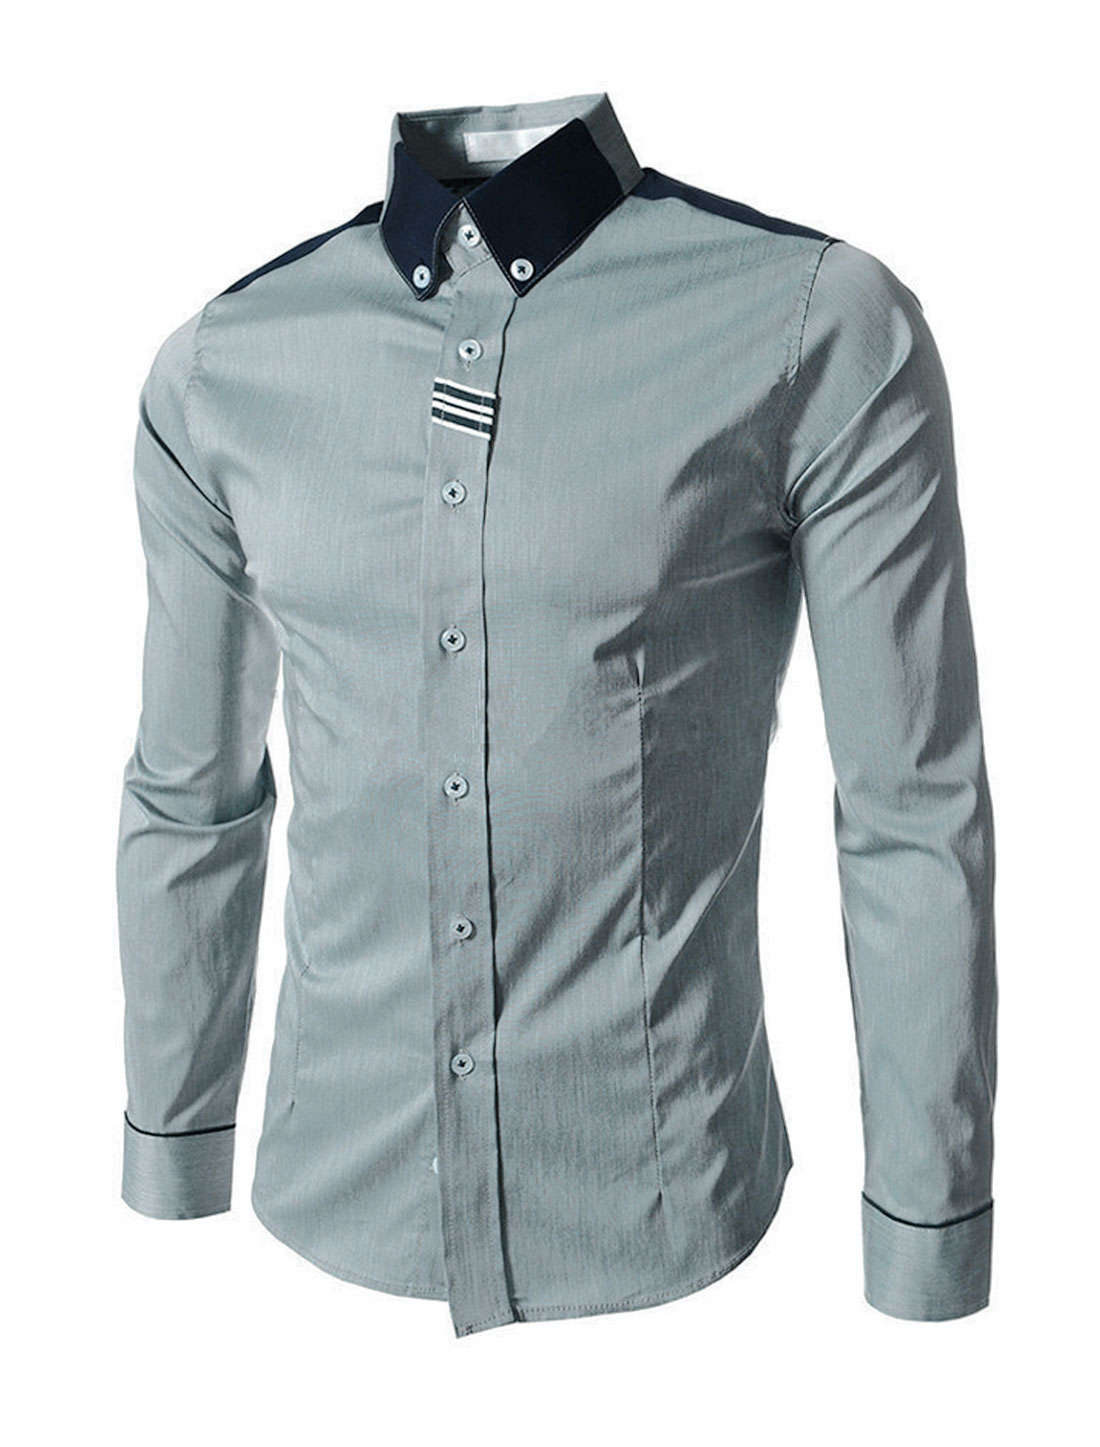 Men Single Breasted Panel Buttons Cuffs Button Down Shirt Light Gray M